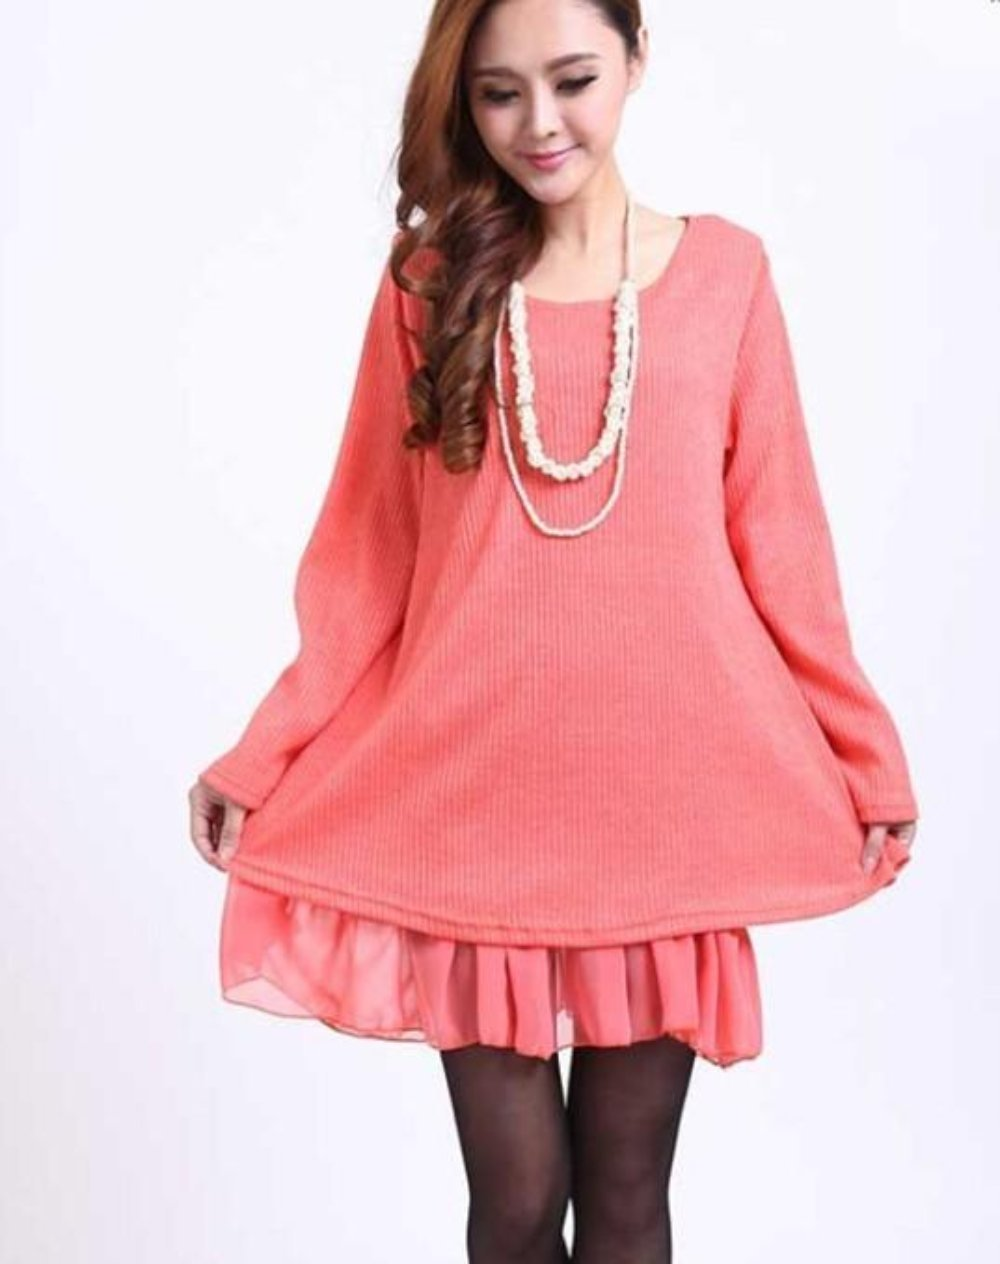 Pink Layered Tunic Sweater Dress with Frill Trim